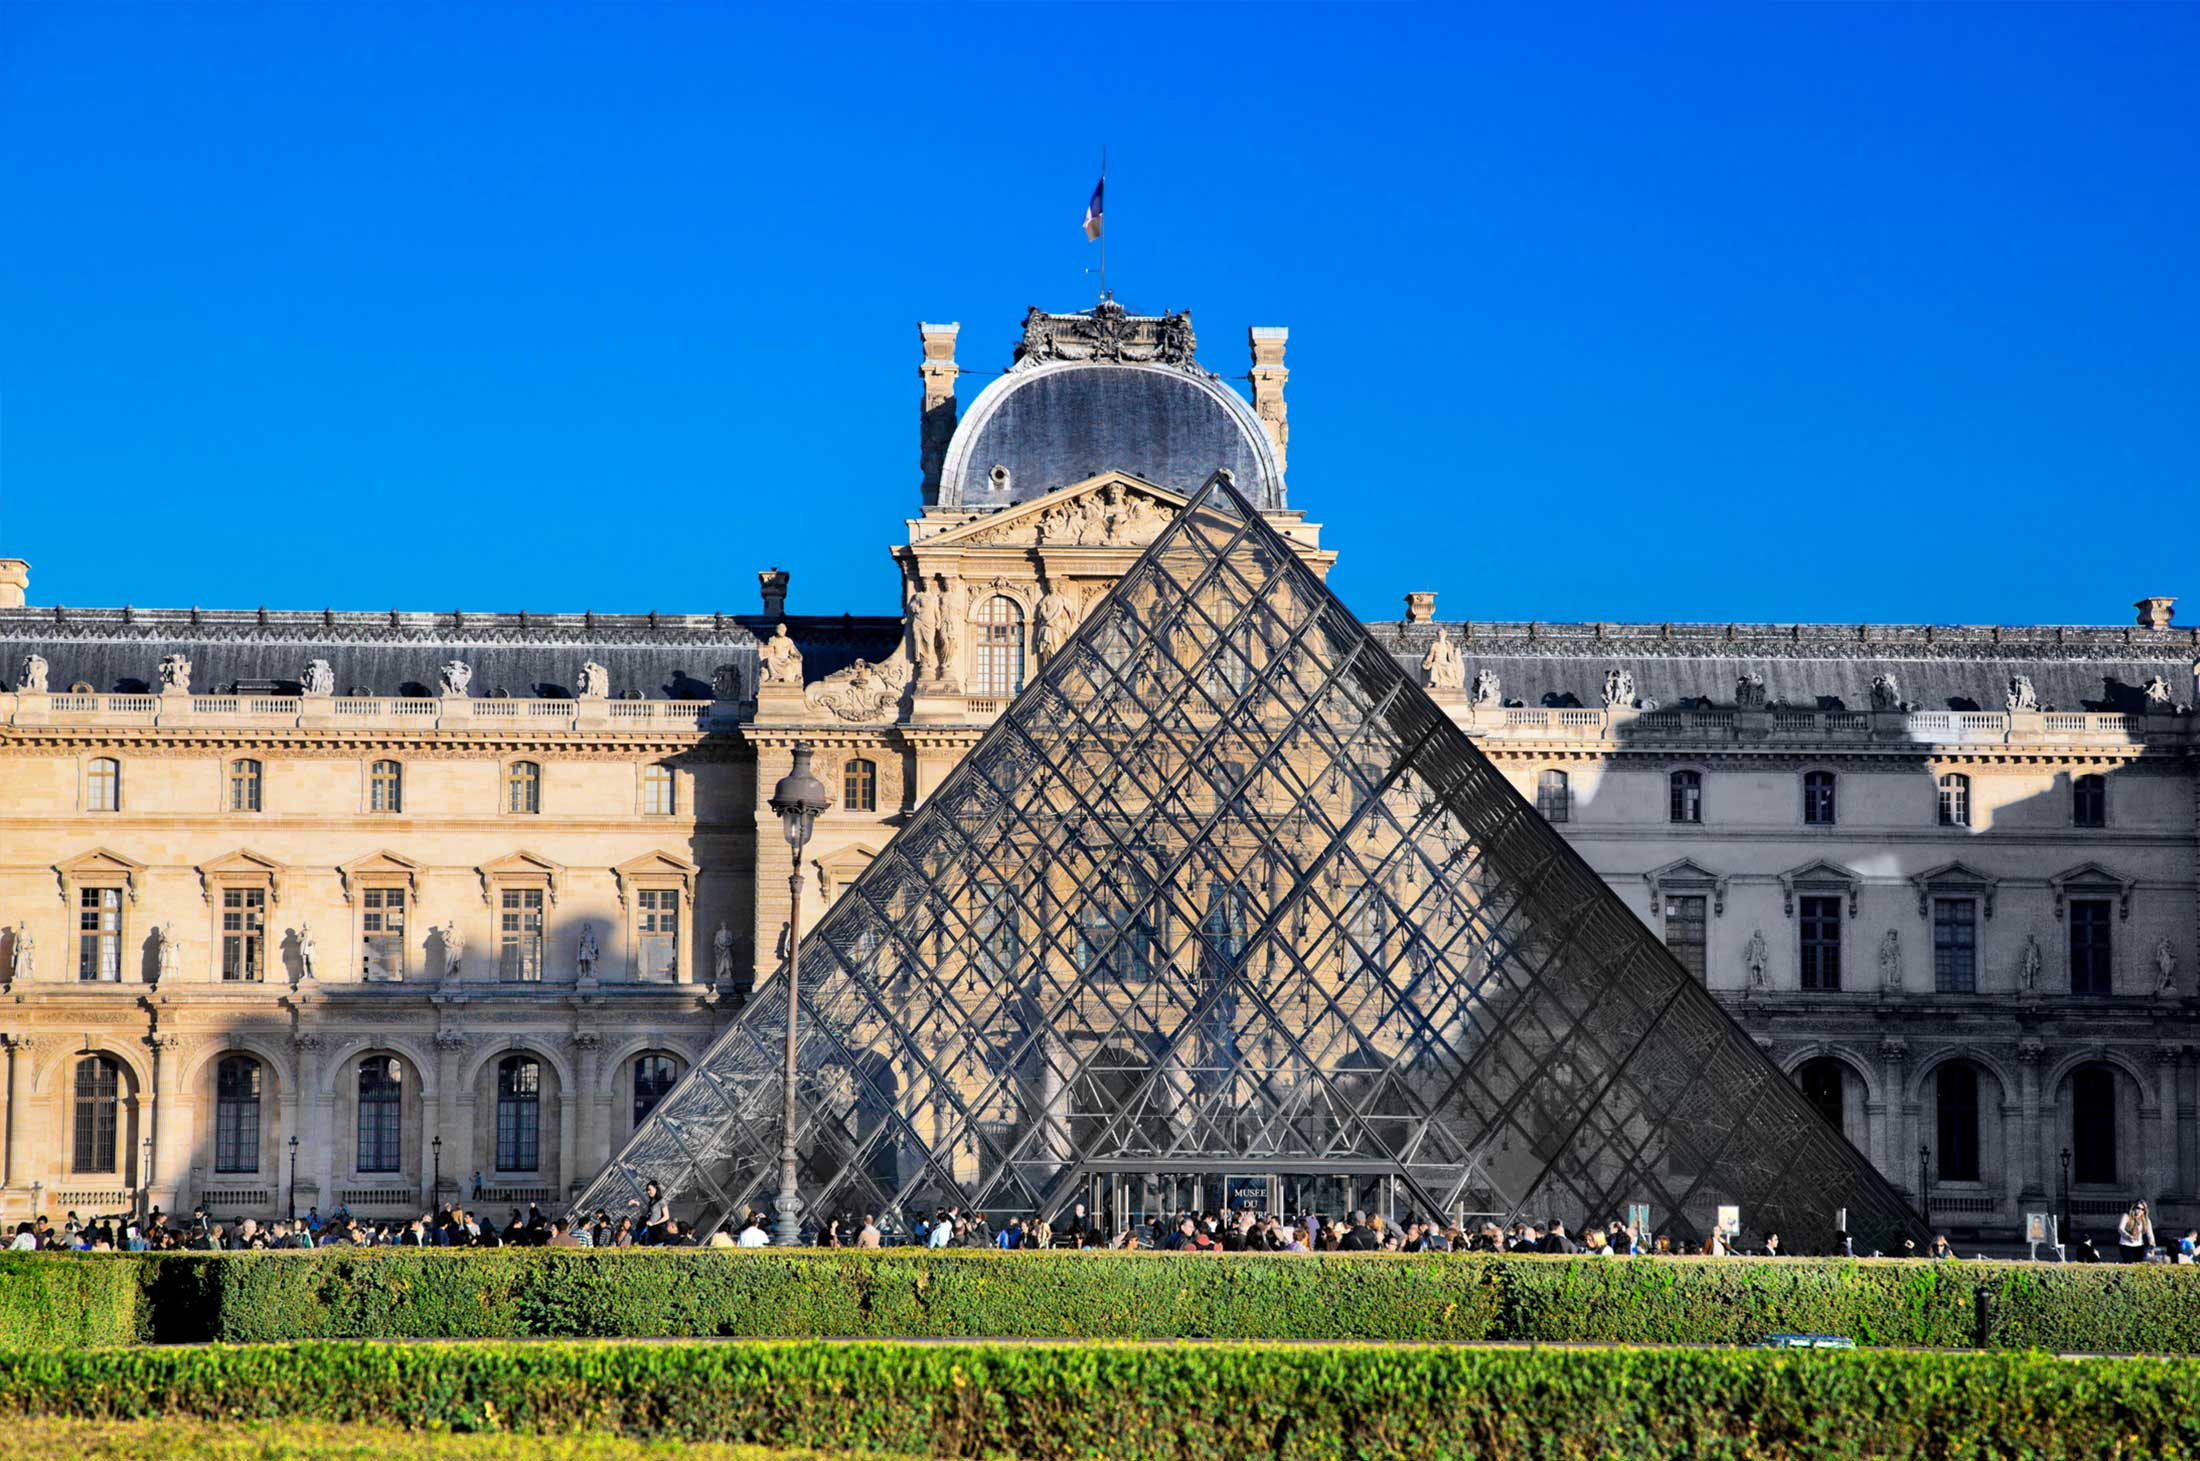 View of one of the glass pyramids at the Louvre in Paris, France